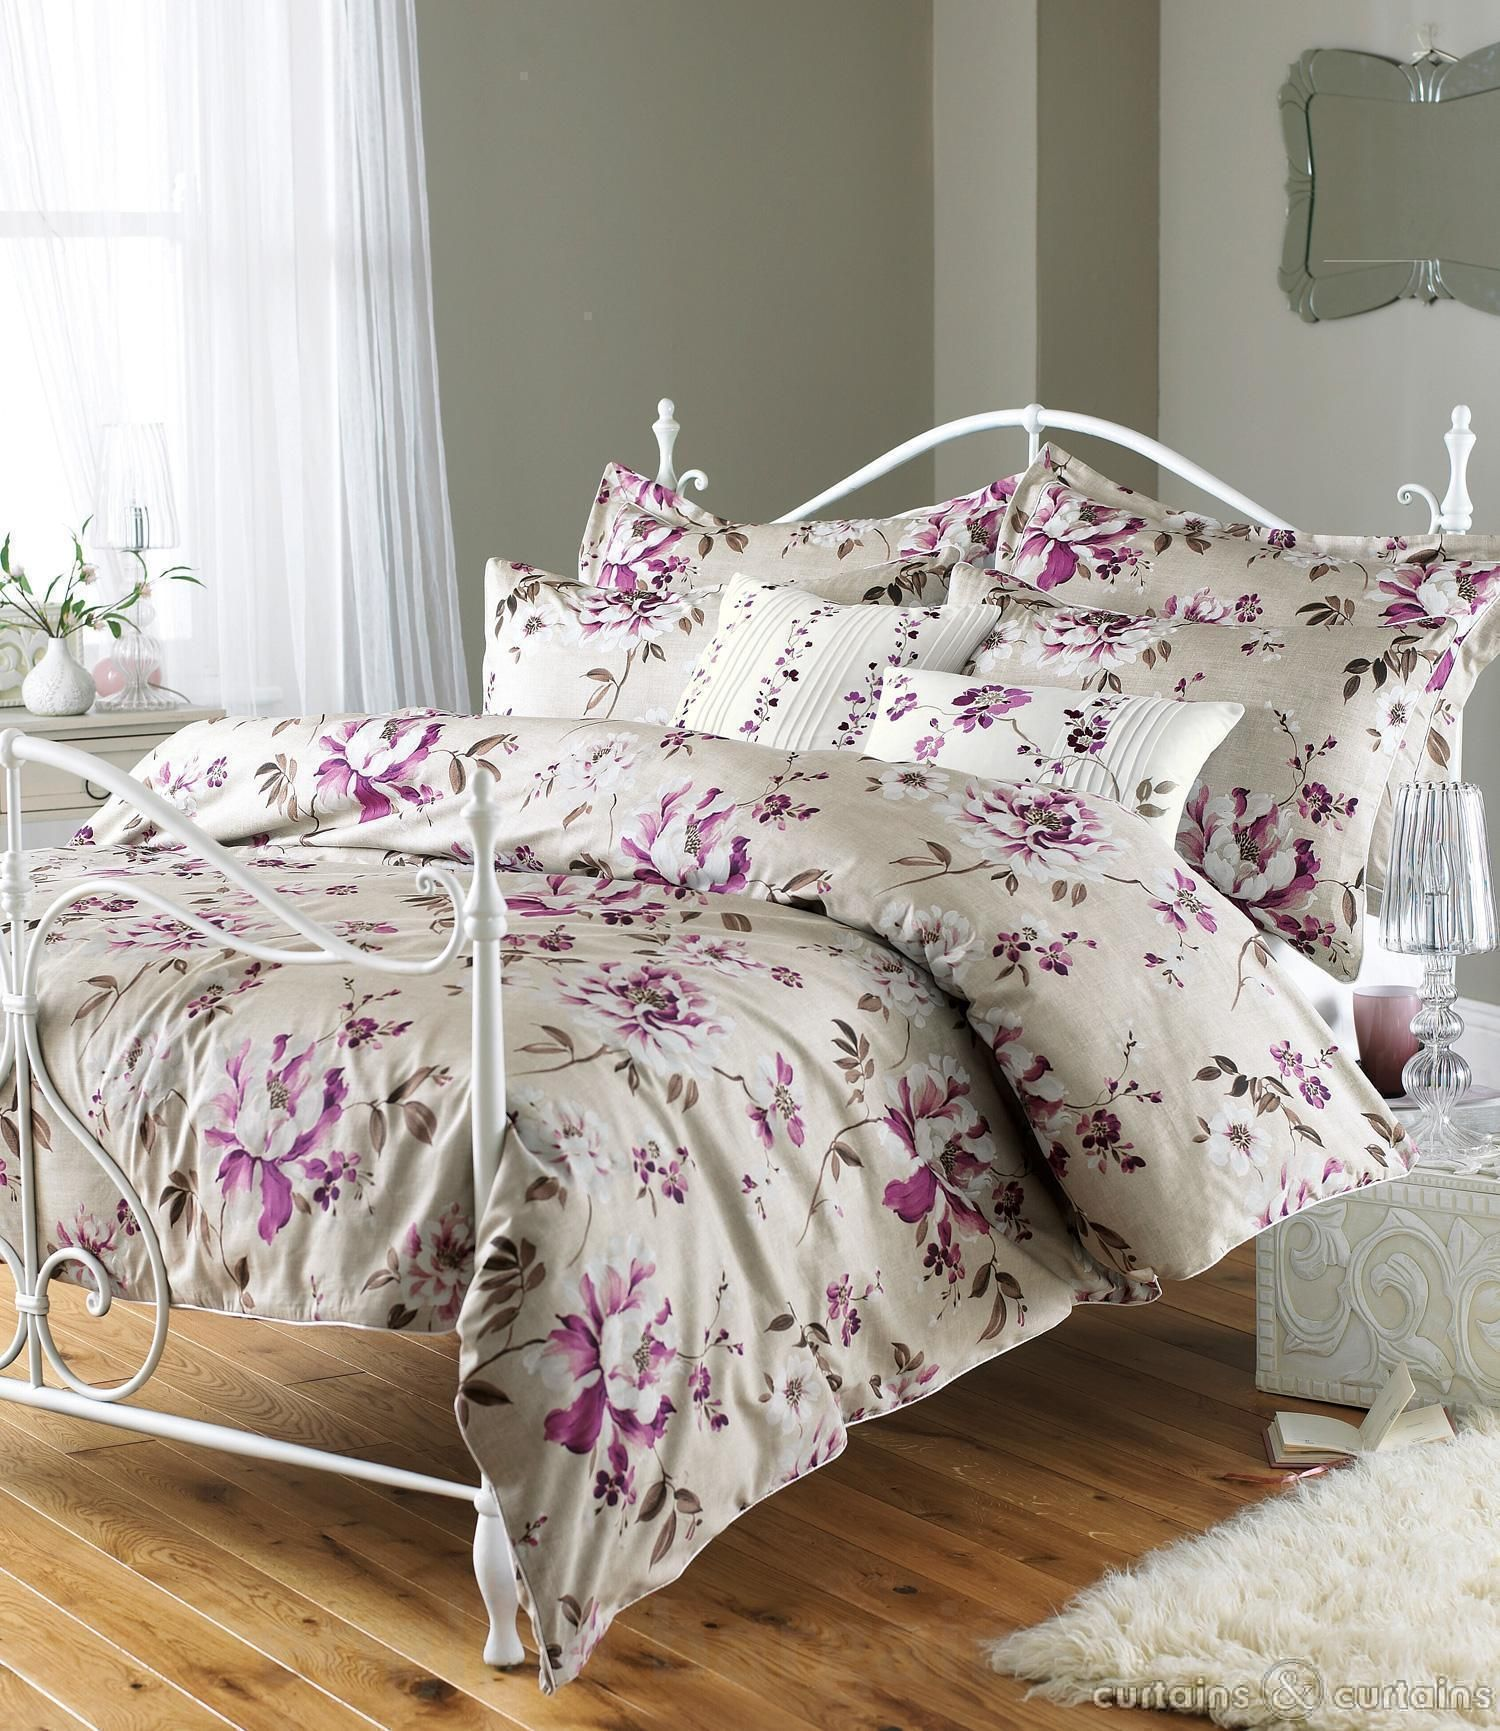 decorating design comforter htm with comforters for interior sets vintage floral room decor a beautiful bedroom white tips rose